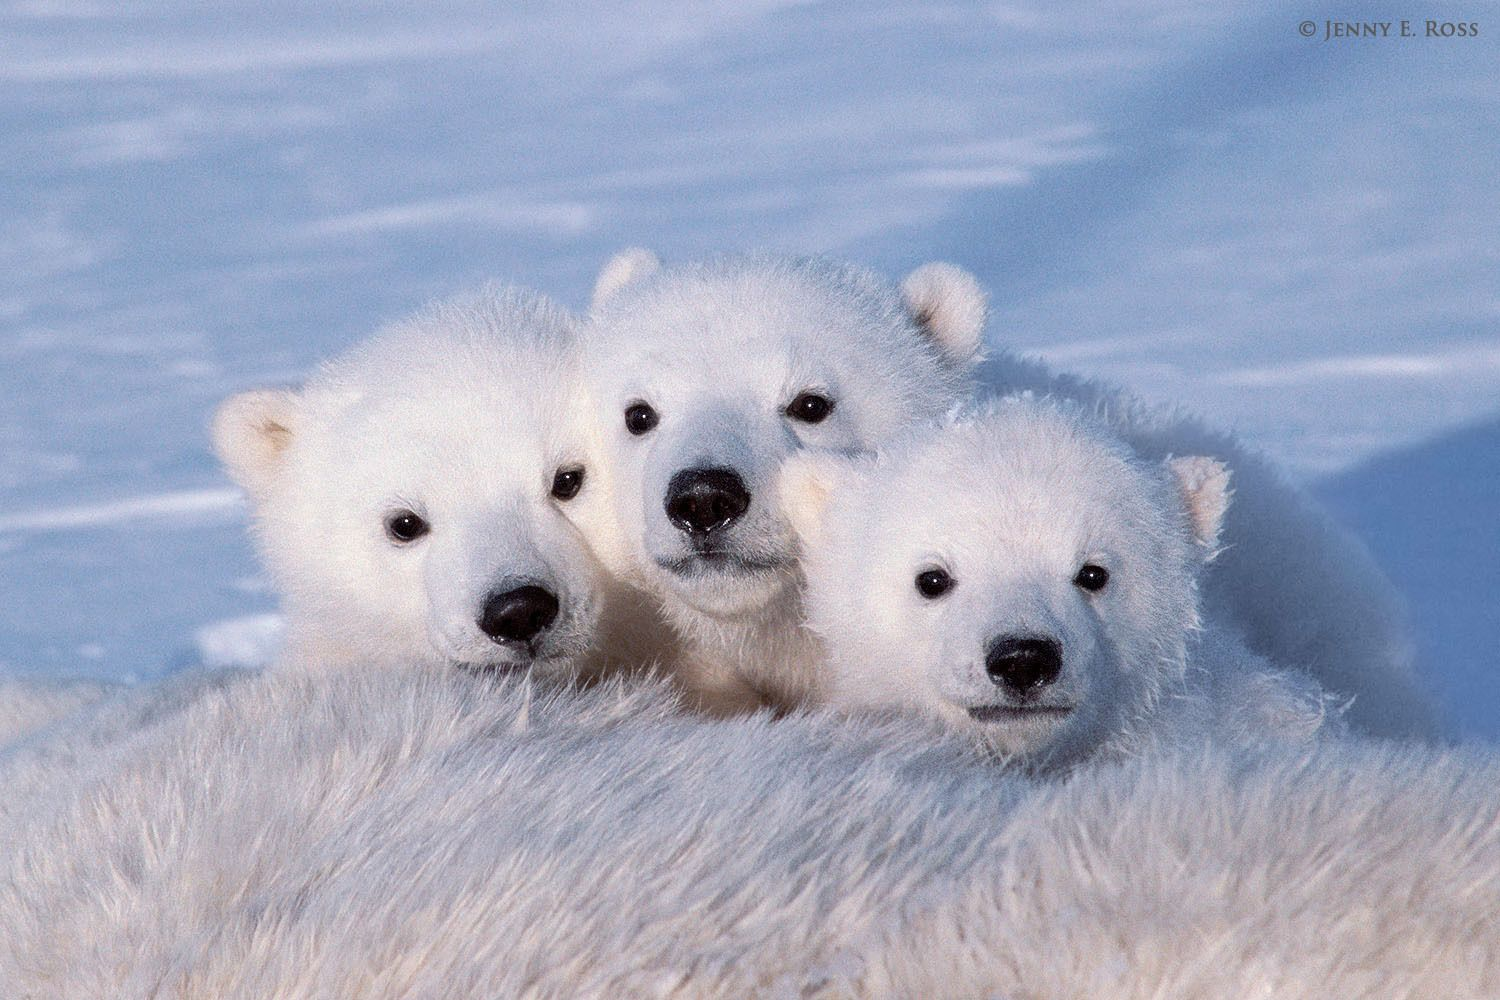 Polar bear (Ursus maritimus) triplet cubs, about 3 months old, next to their mother.